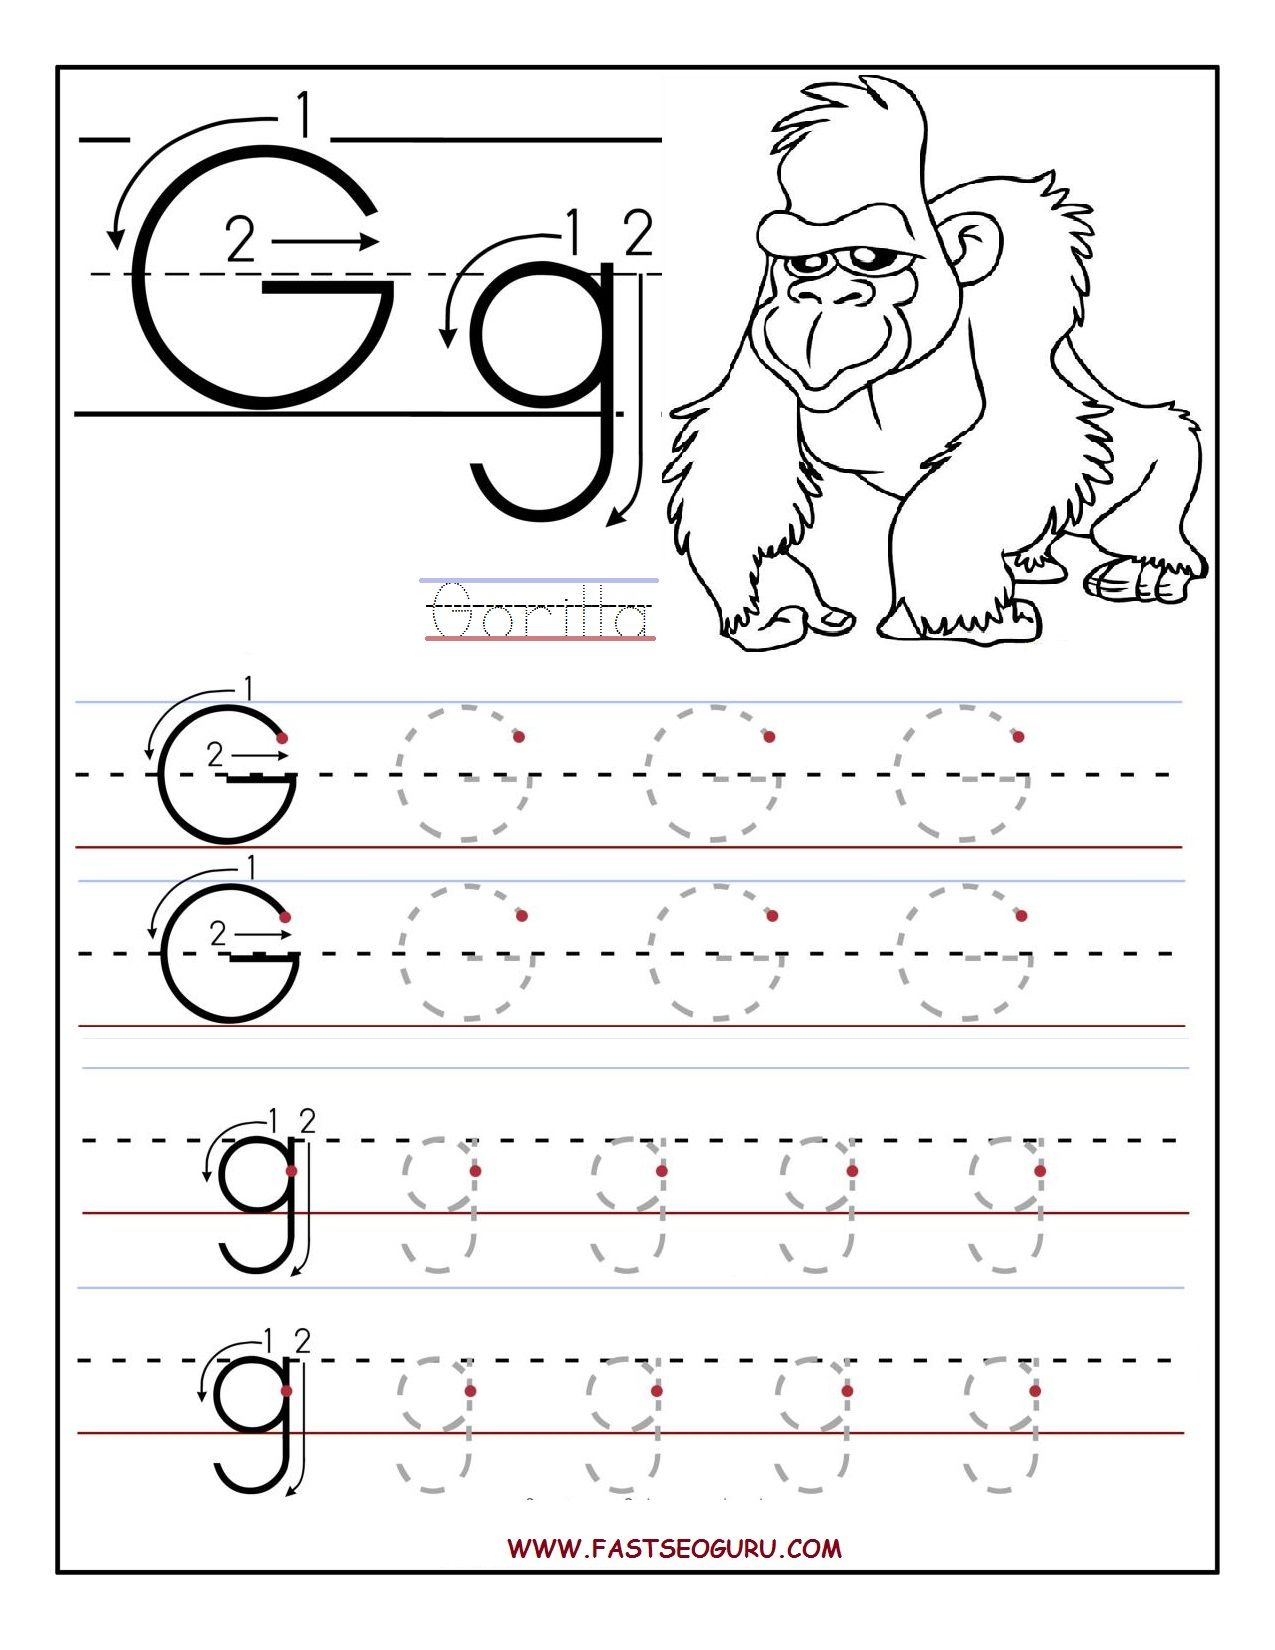 Preschool Letter G Tracing Worksheets 606926